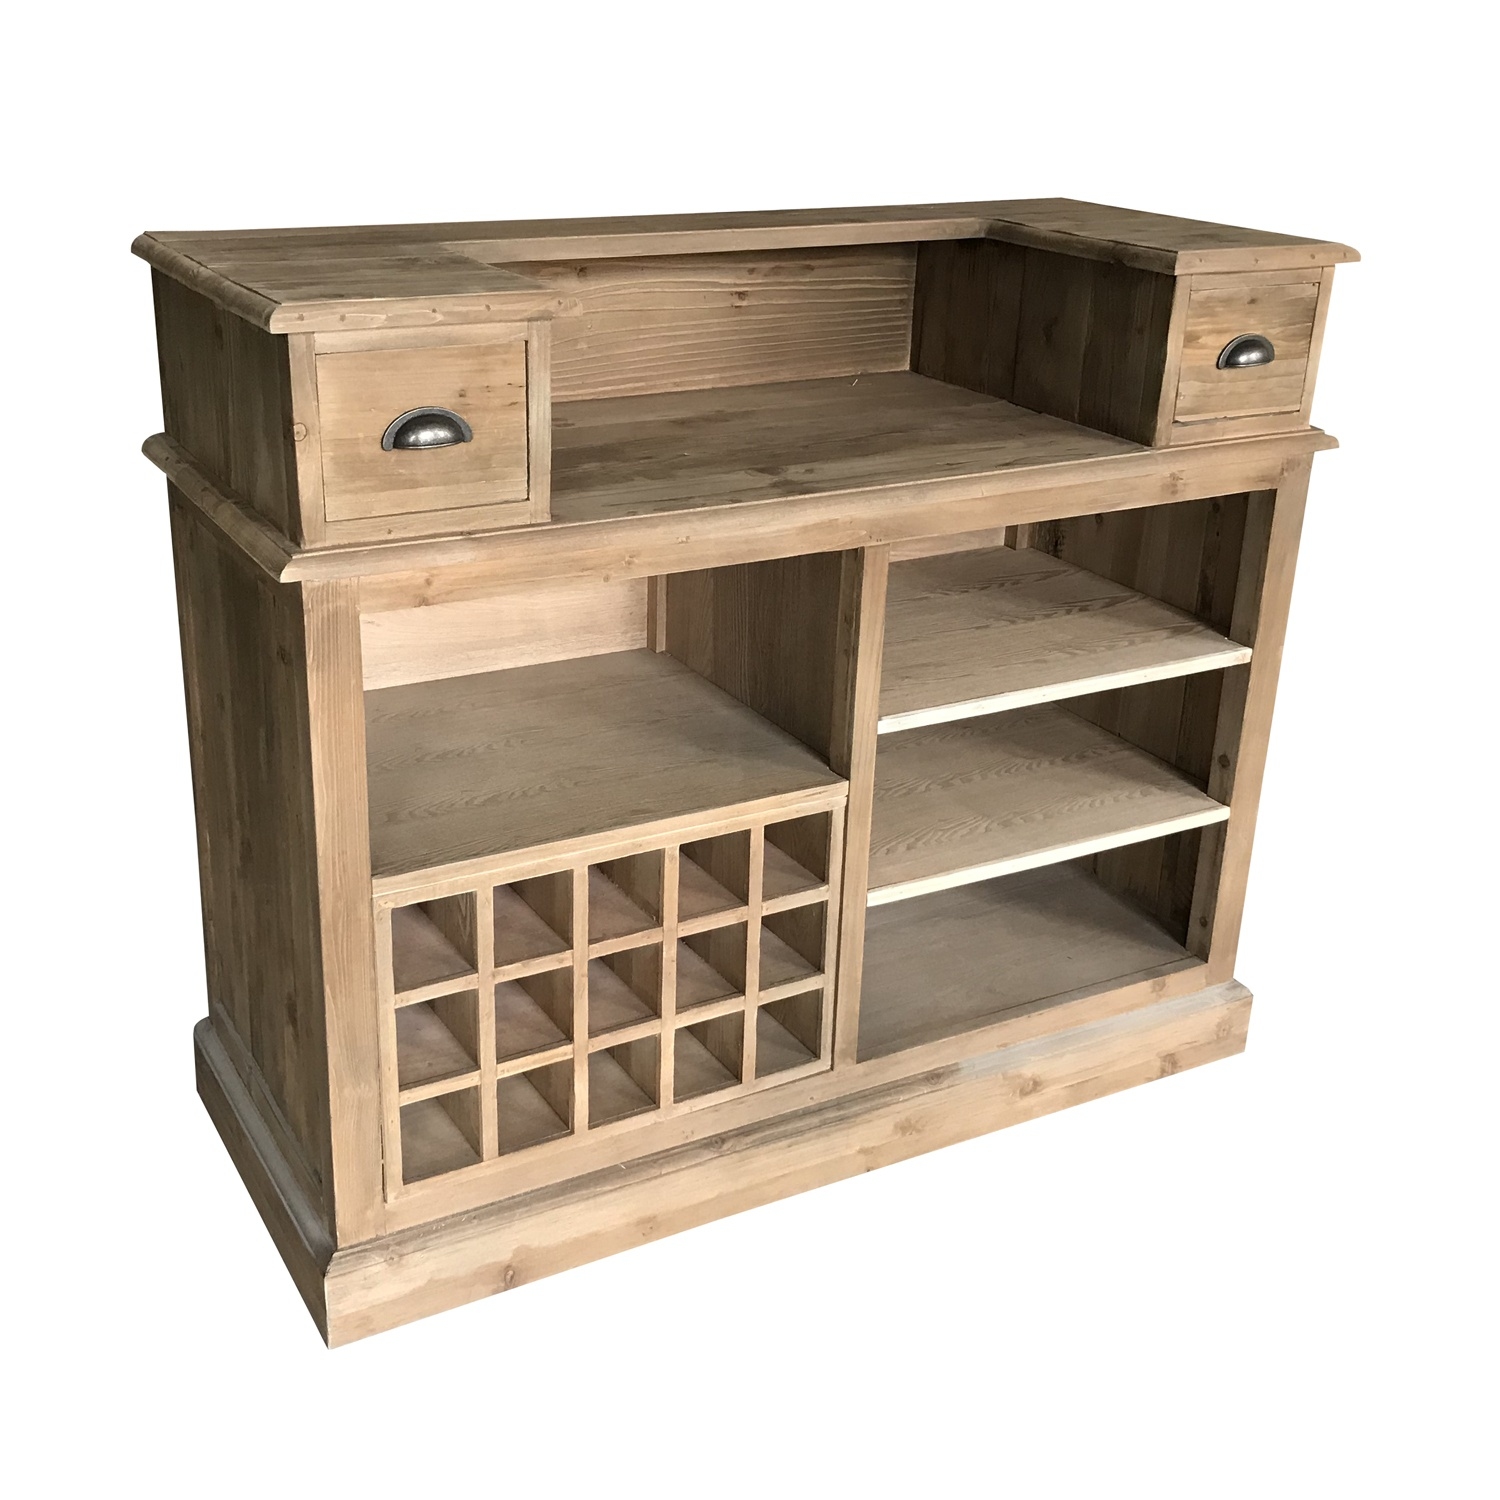 New <strong>design</strong> European <strong>style</strong> reclaimed fir wood <strong>antique</strong> home wooden wine cabinet